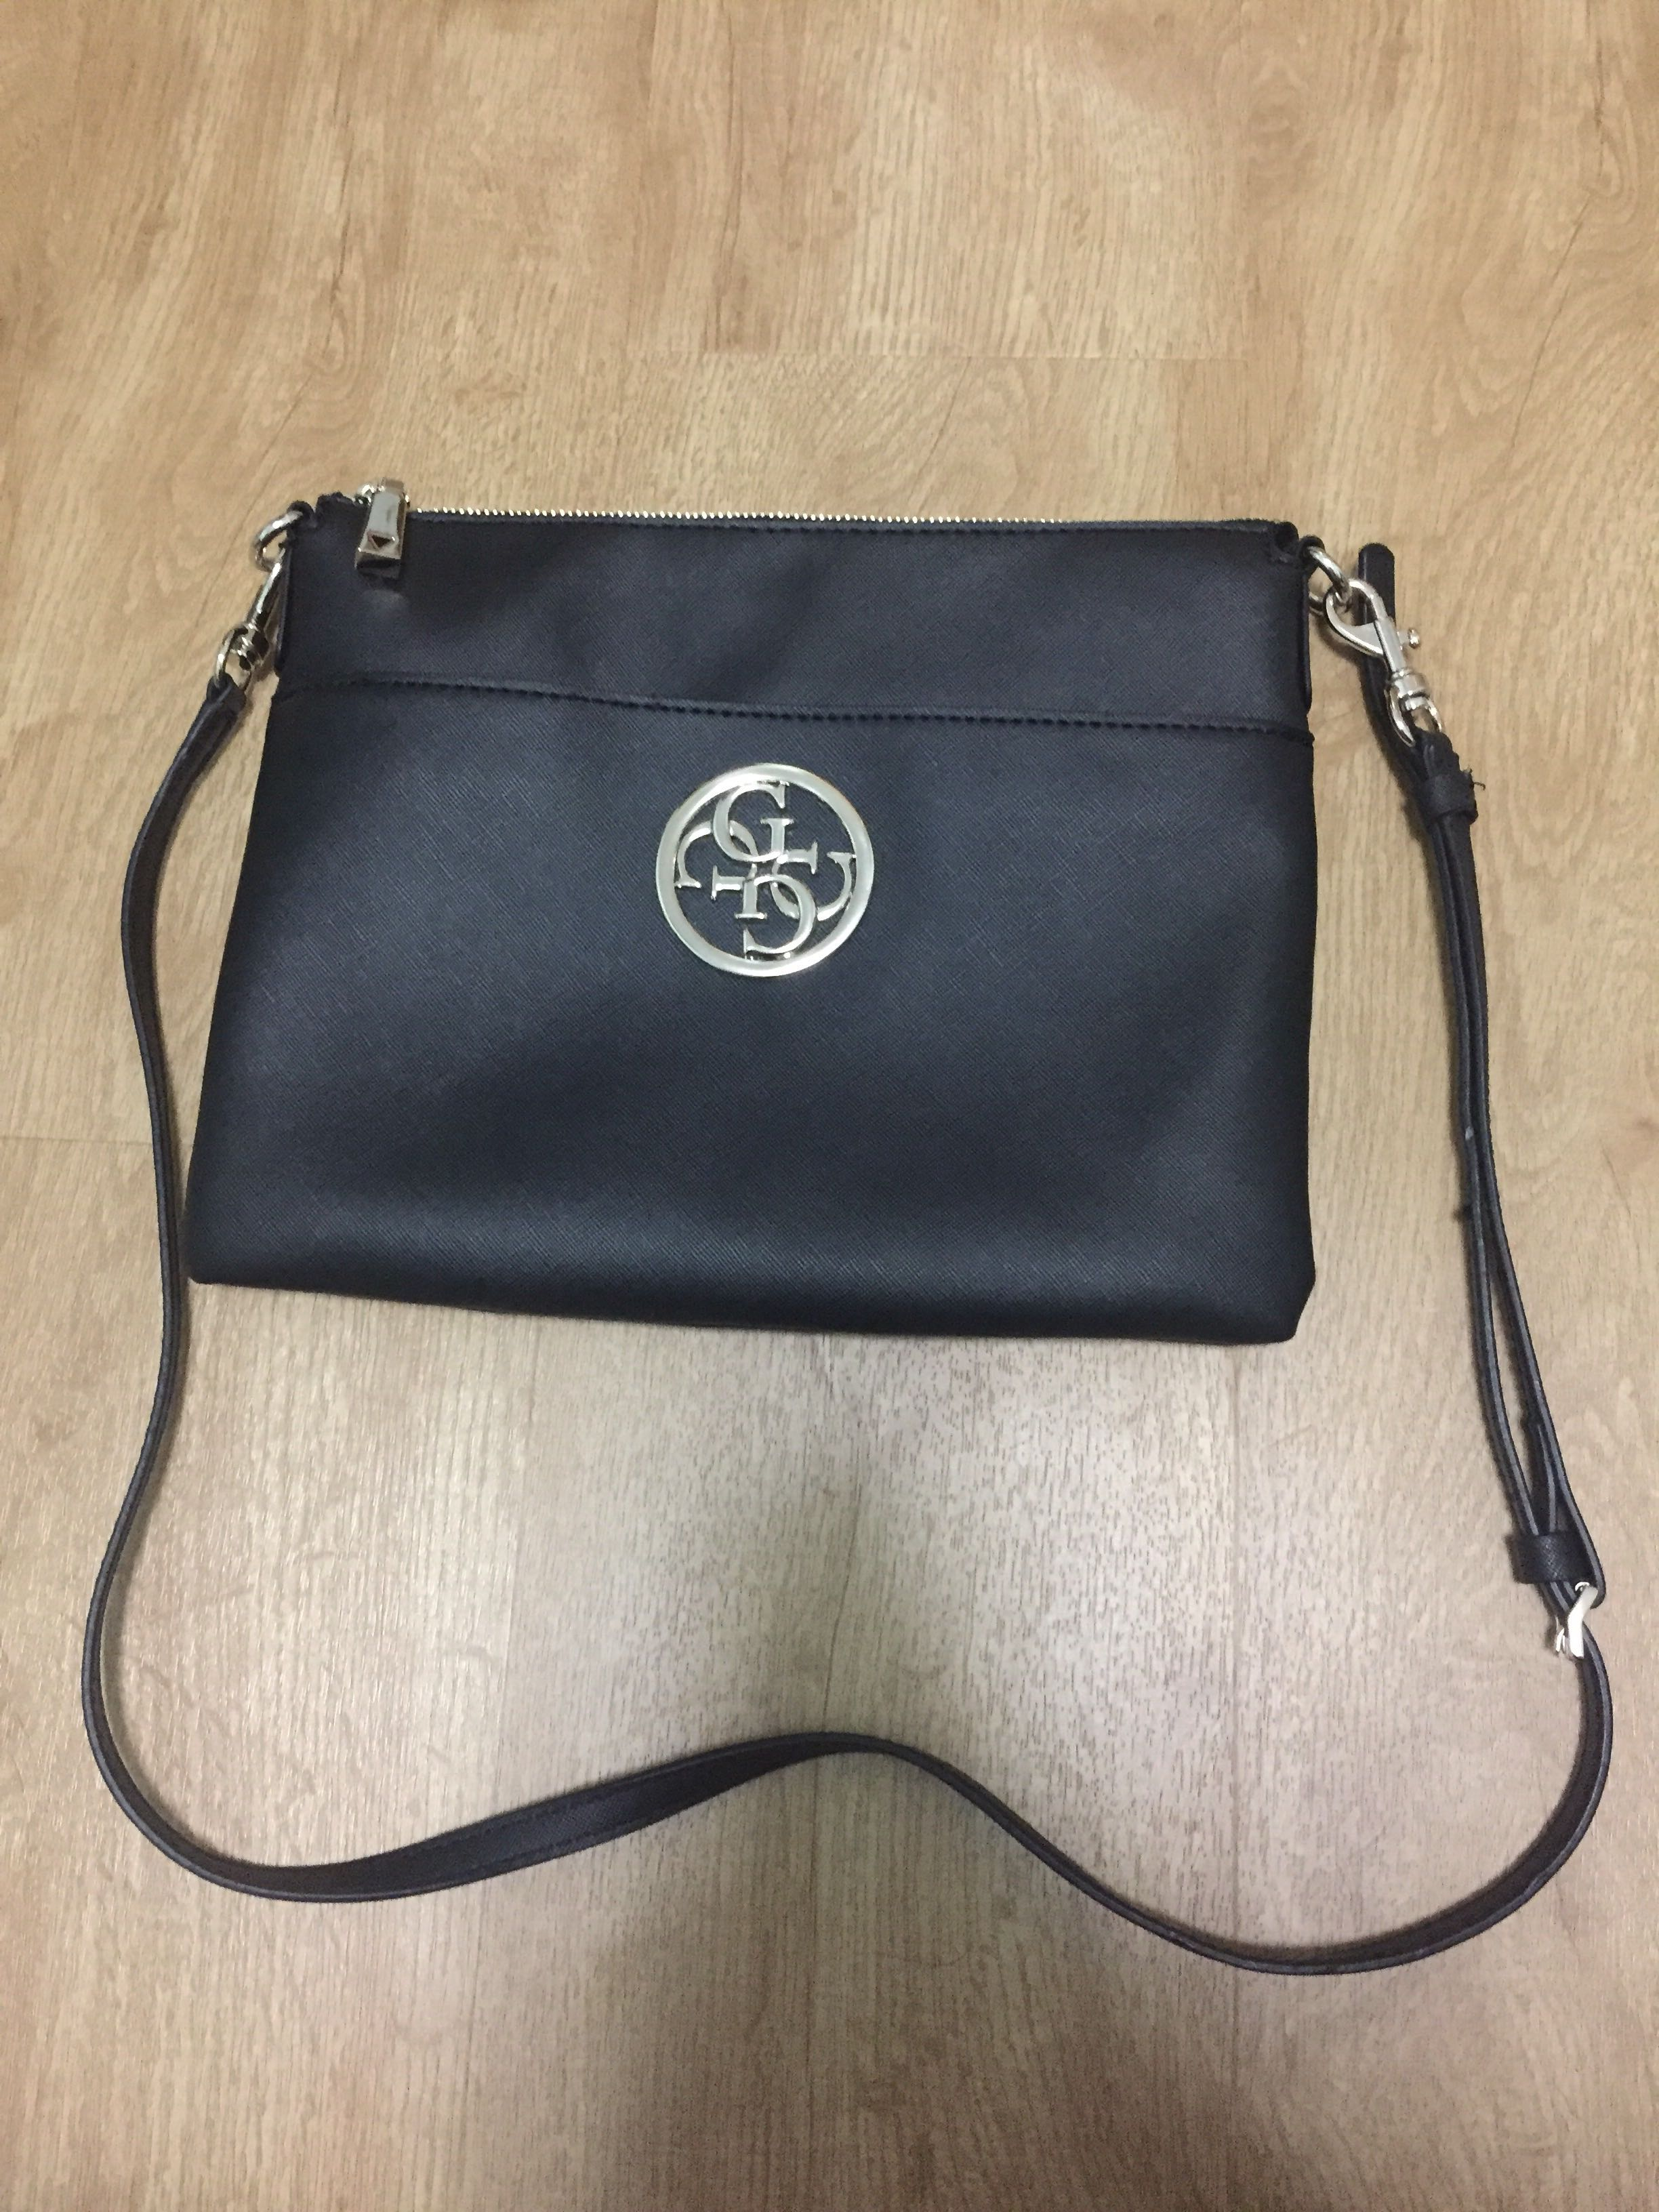 Guess black sling bag (authentic 291c76930316b